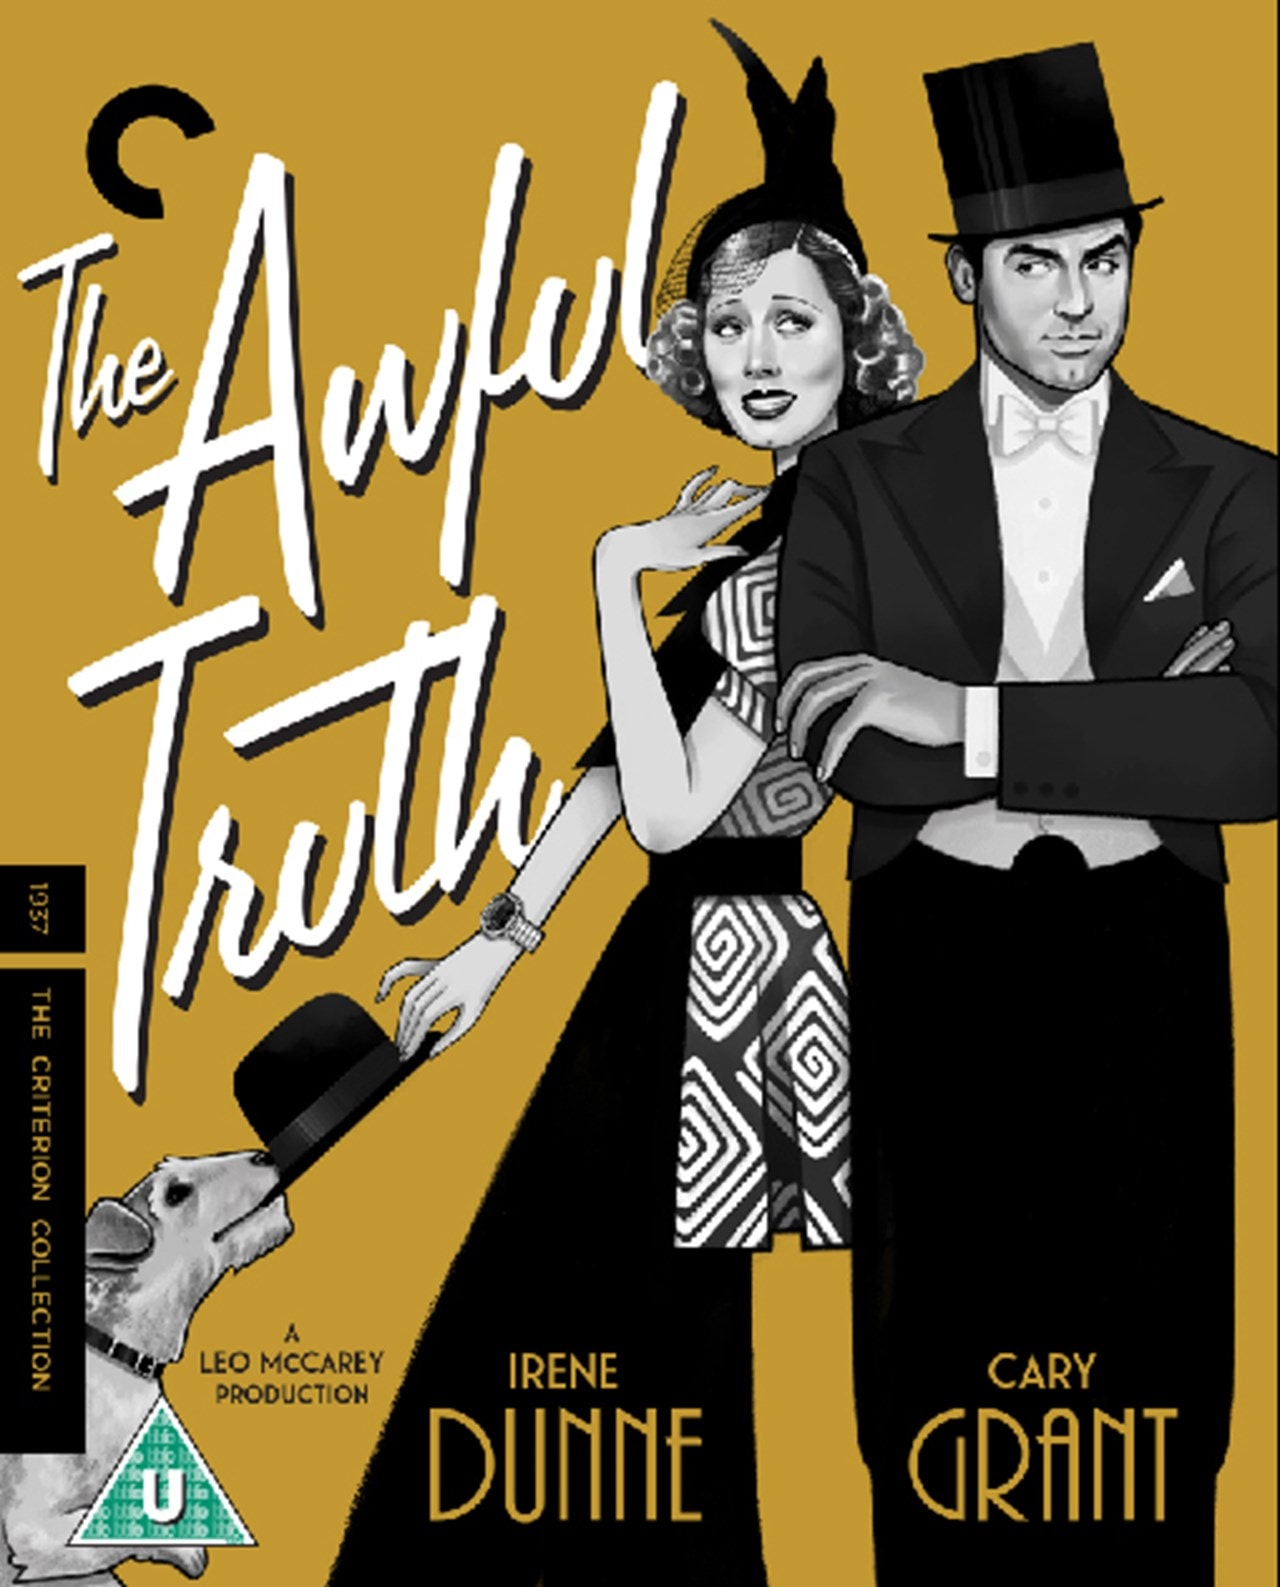 The Awful Truth - The Criterion Collection - 1